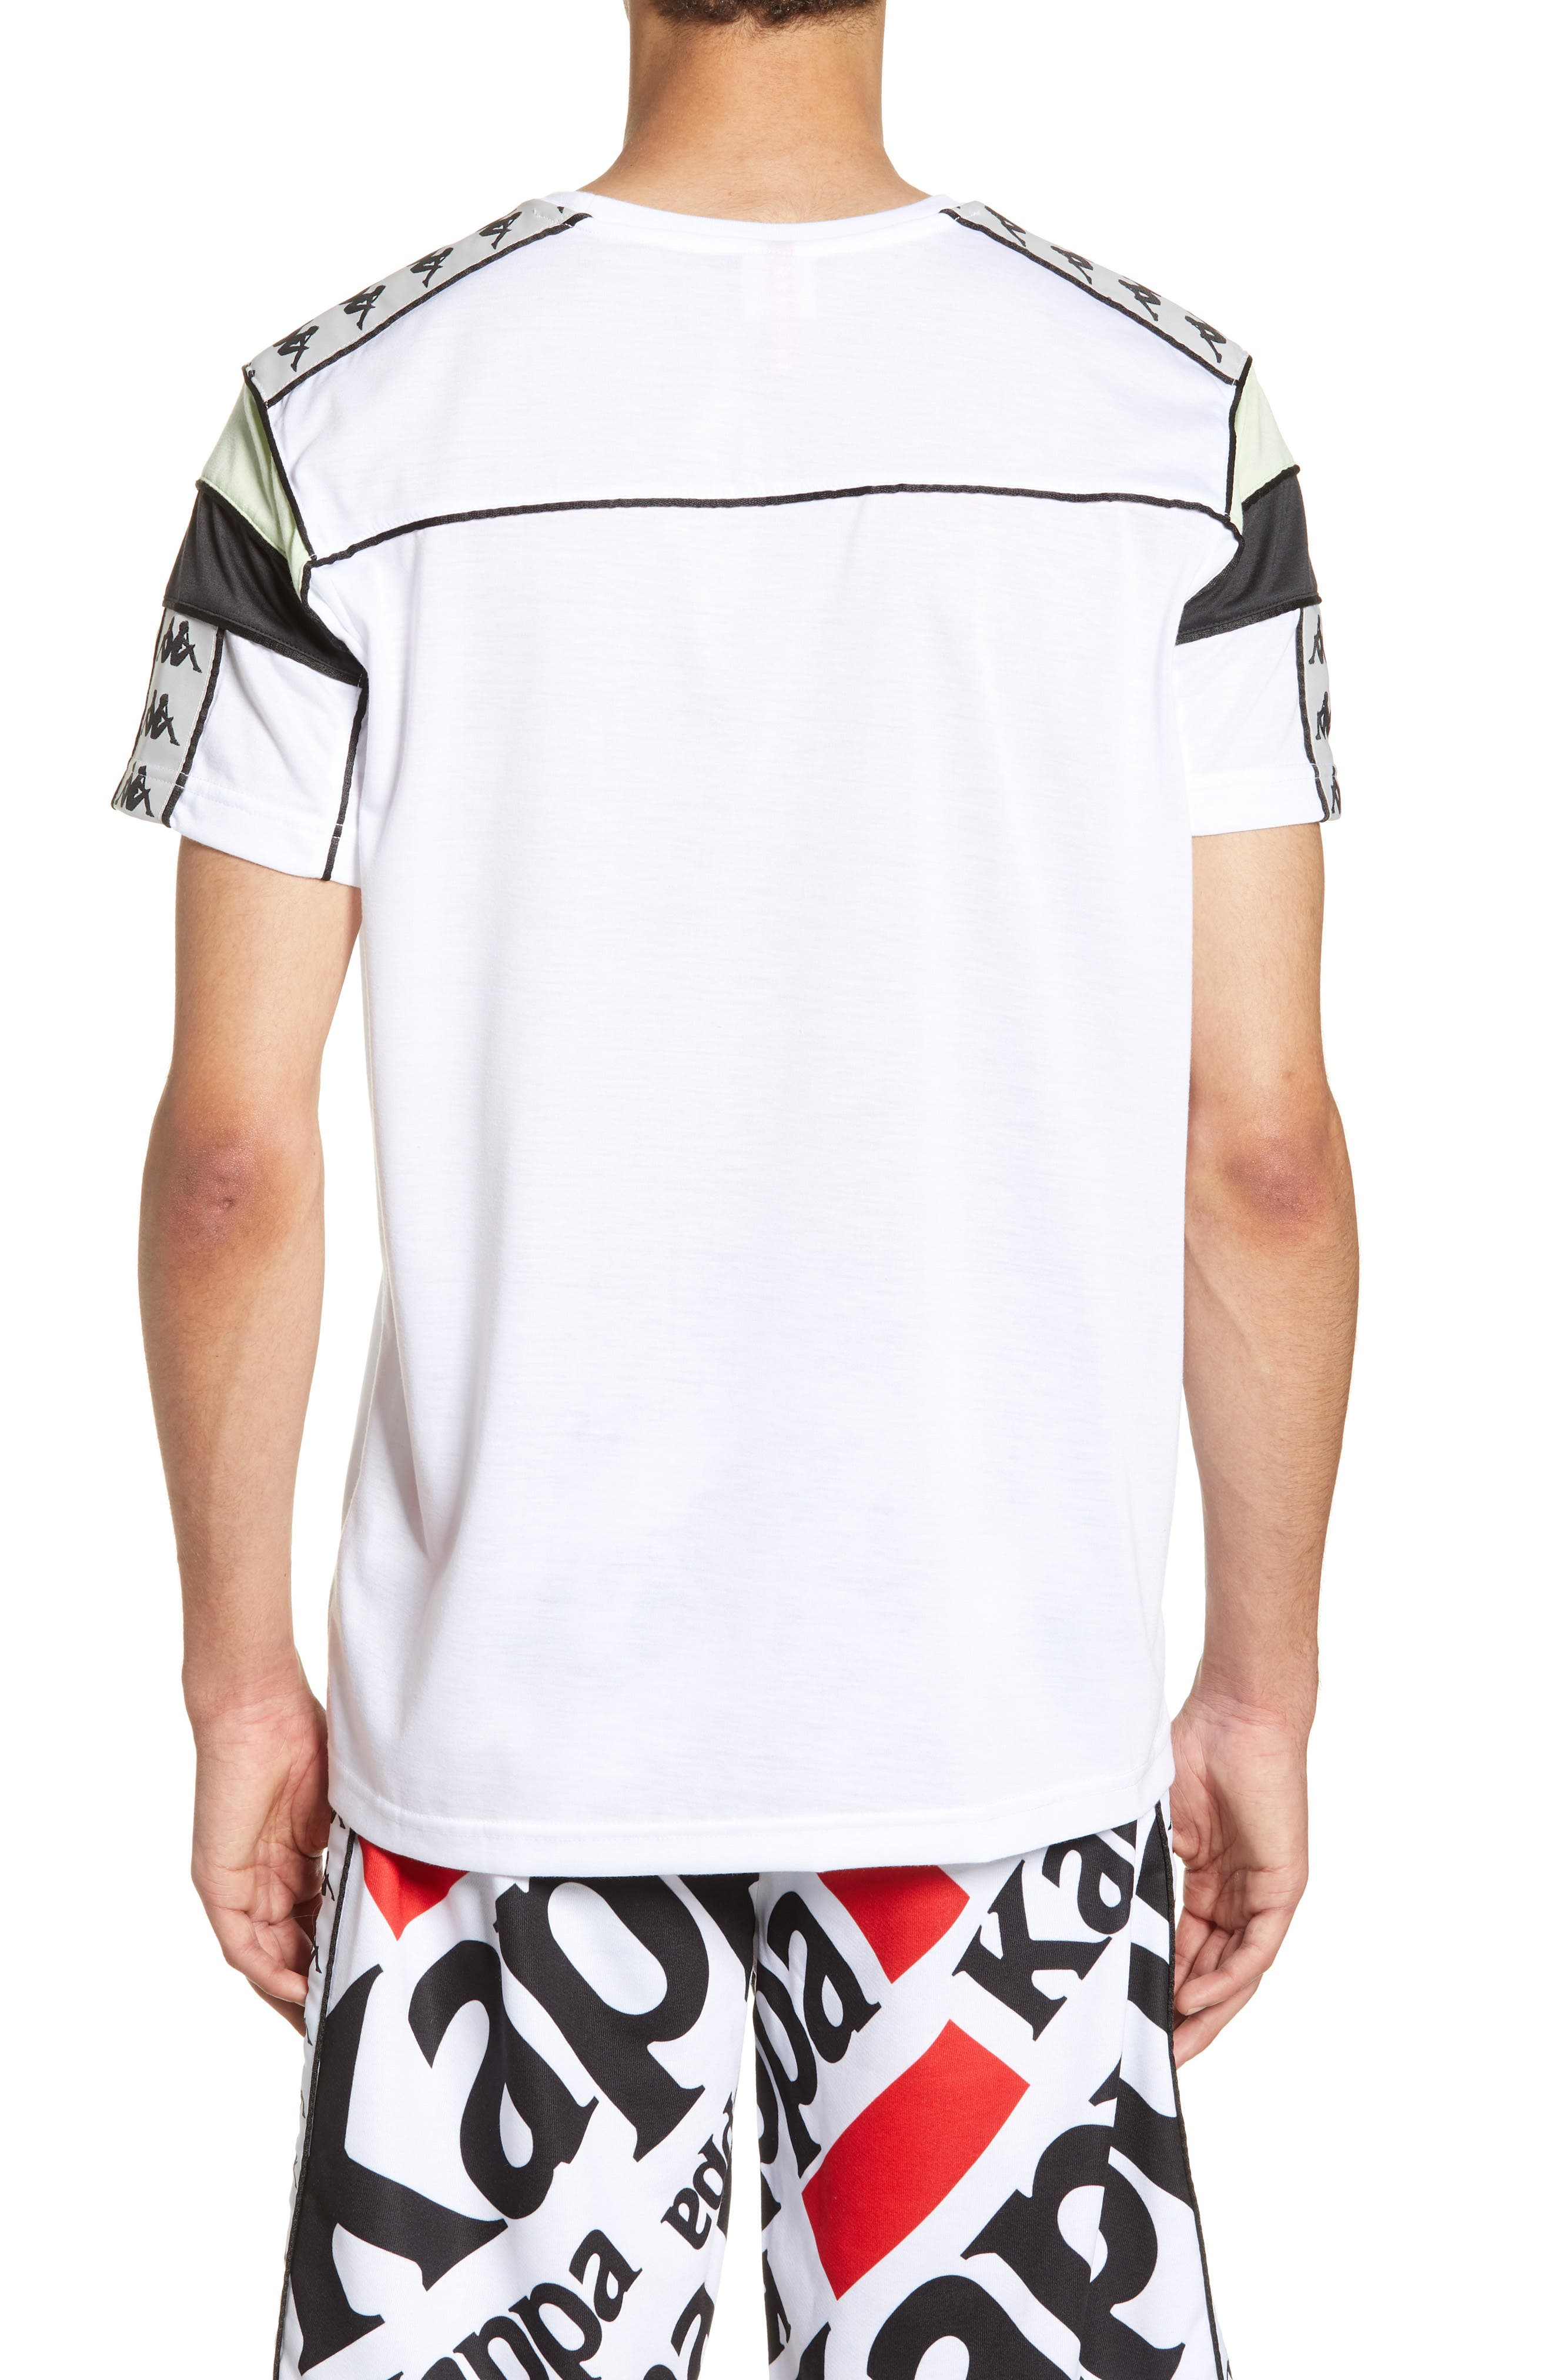 54b907d436 Men's Kappa View All: Clothing, Shoes & Accessories | Nordstrom